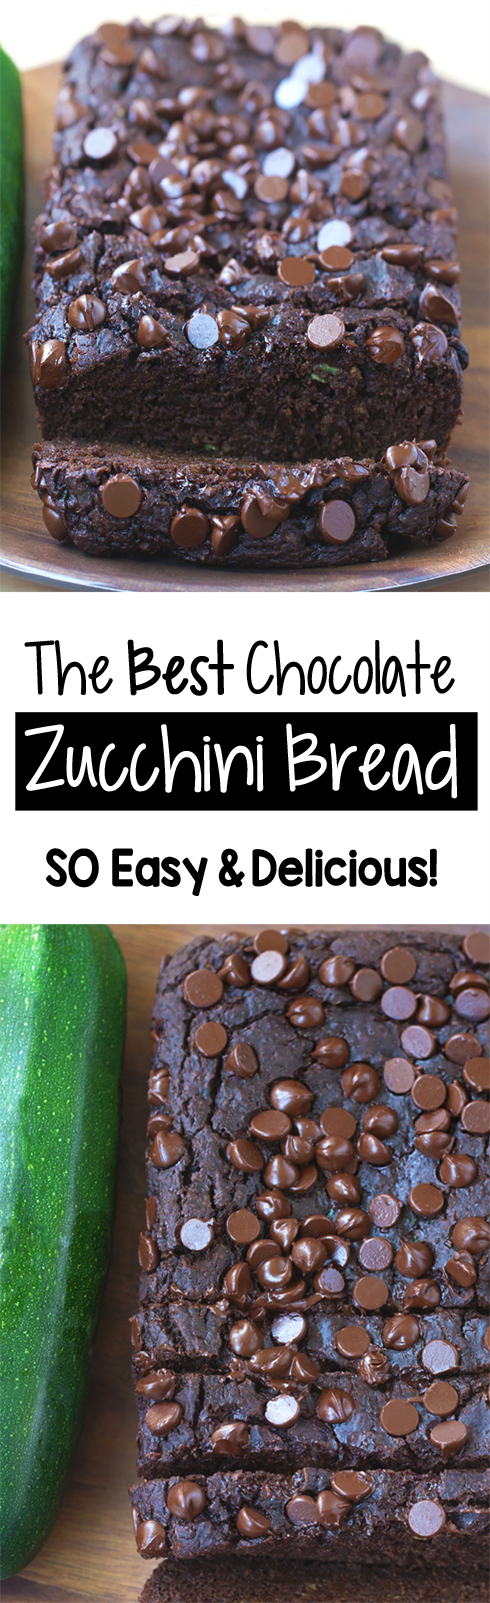 The Best Double Chocolate Zucchini Bread Recipe